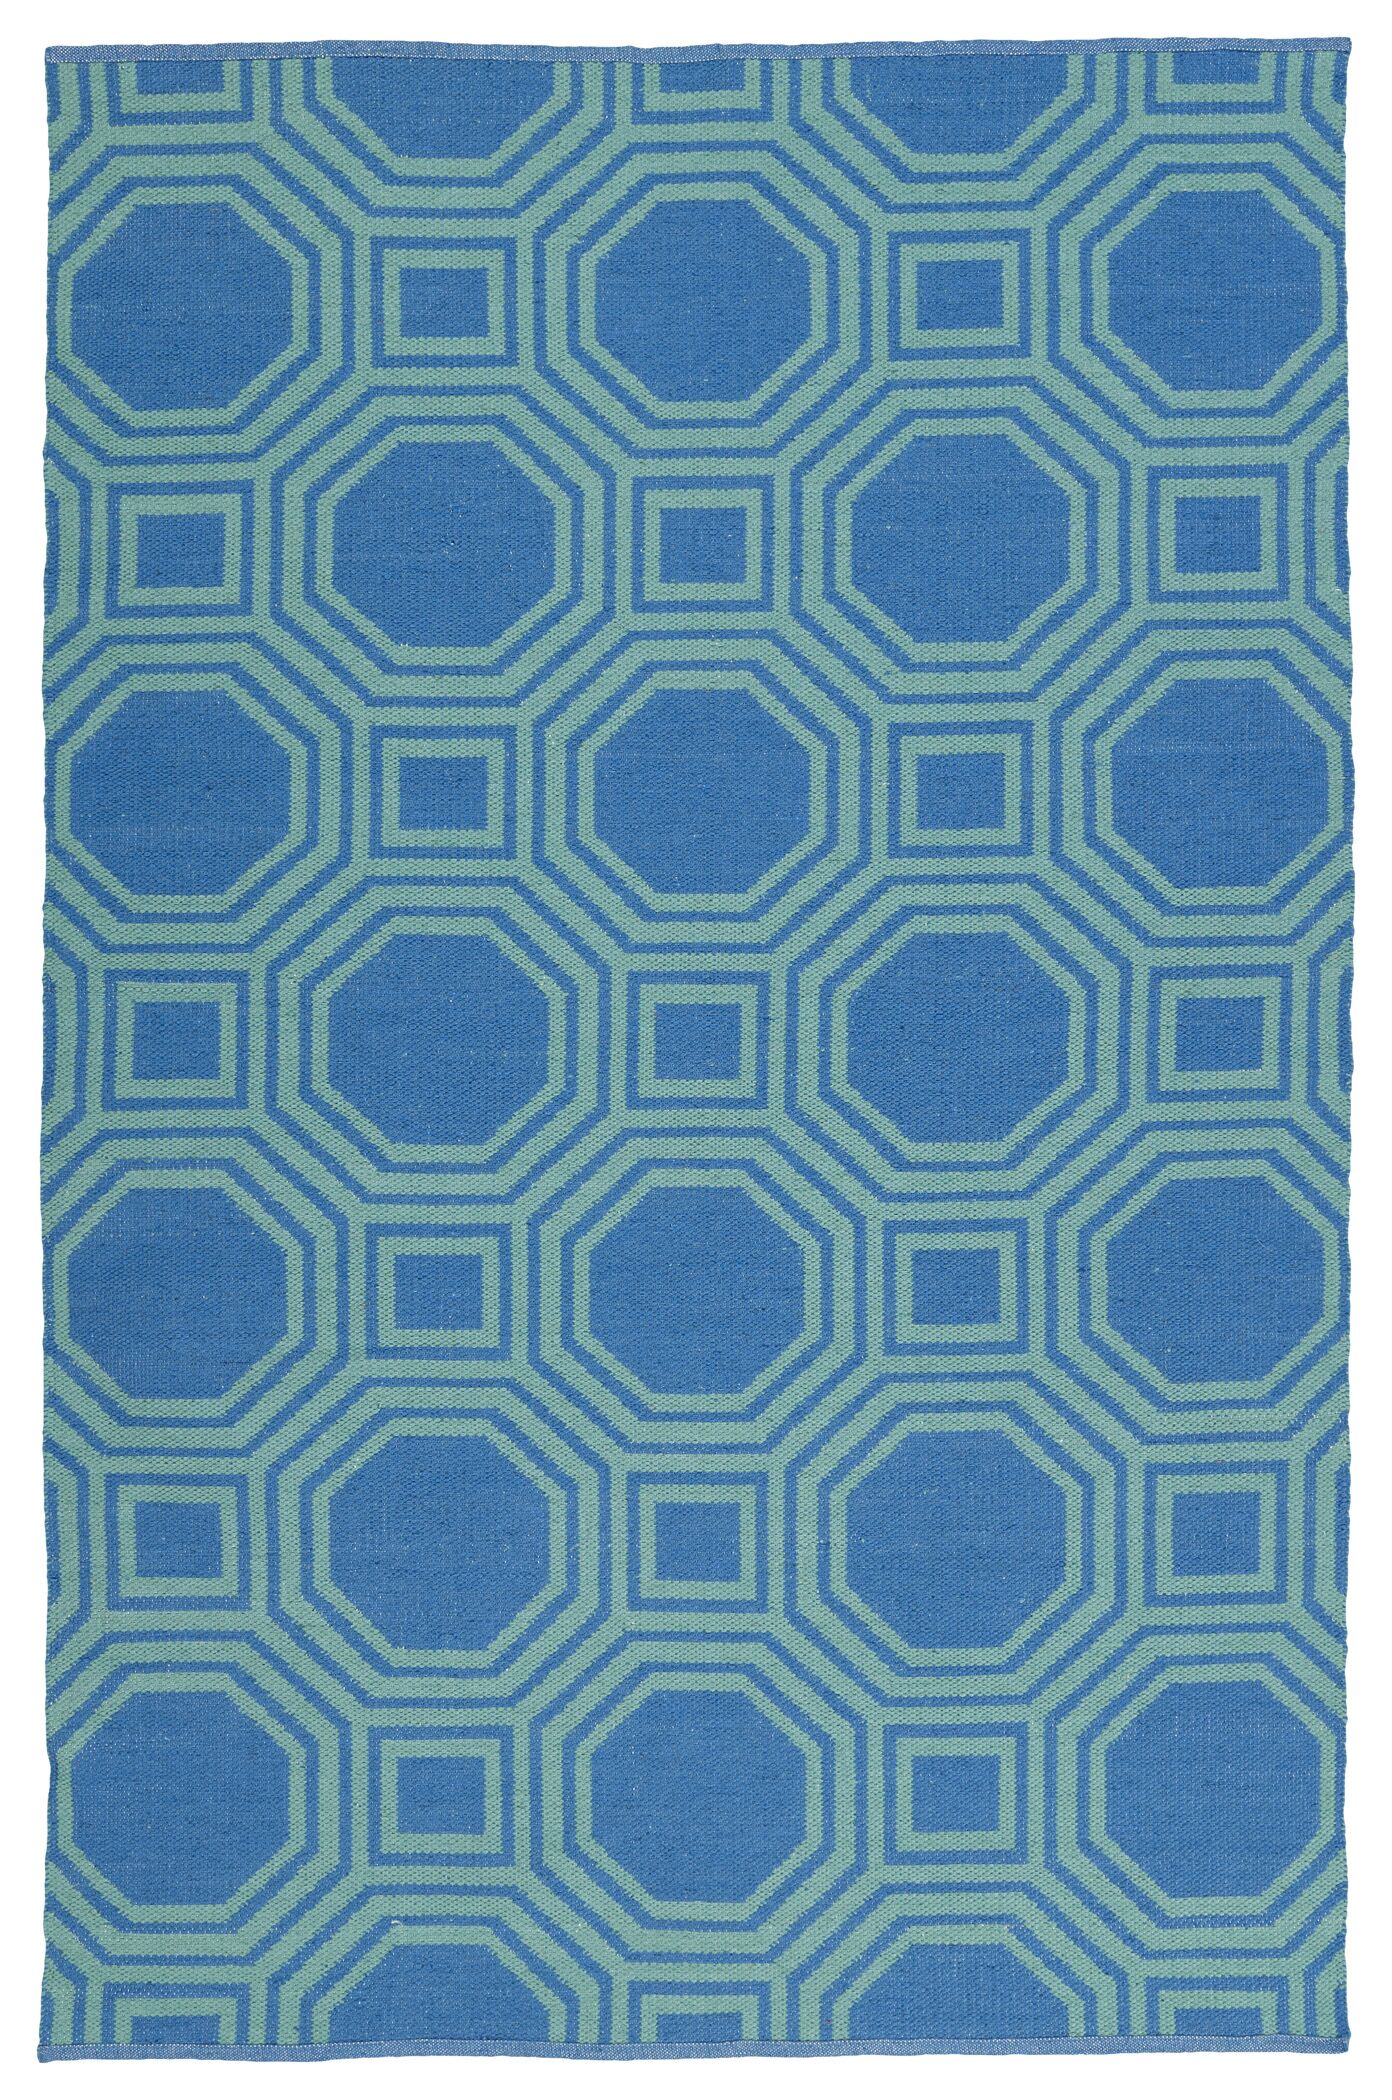 Littleton Green/Blue Indoor/Outdoor Area Rug Rug Size: Rectangle 9' x 12'